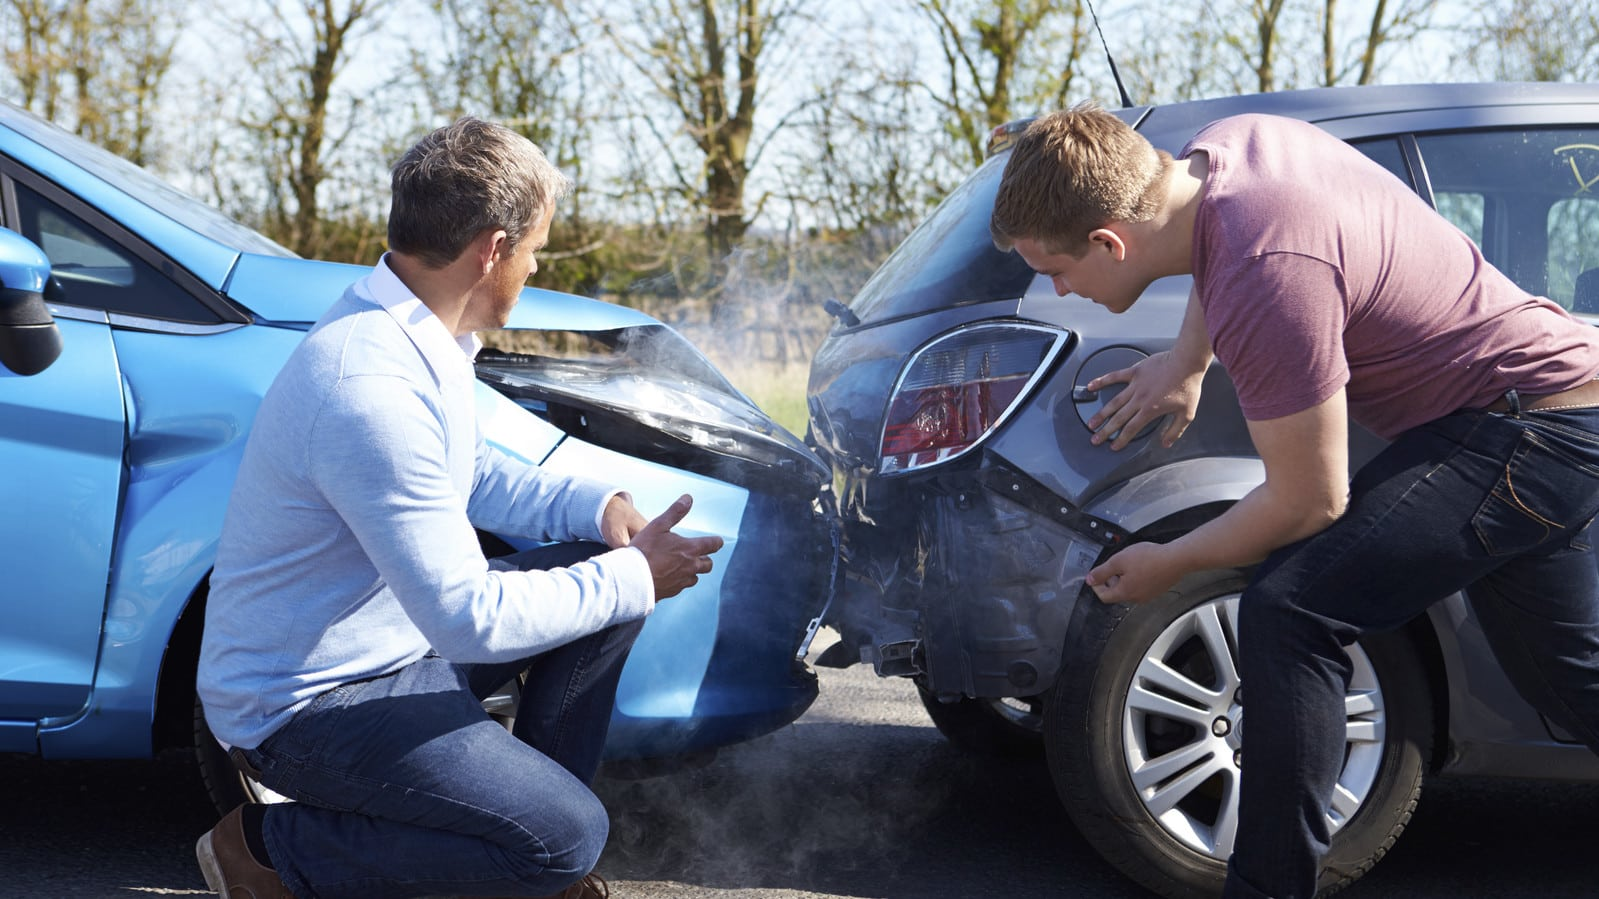 Rear-End Car Accident Stock Photo